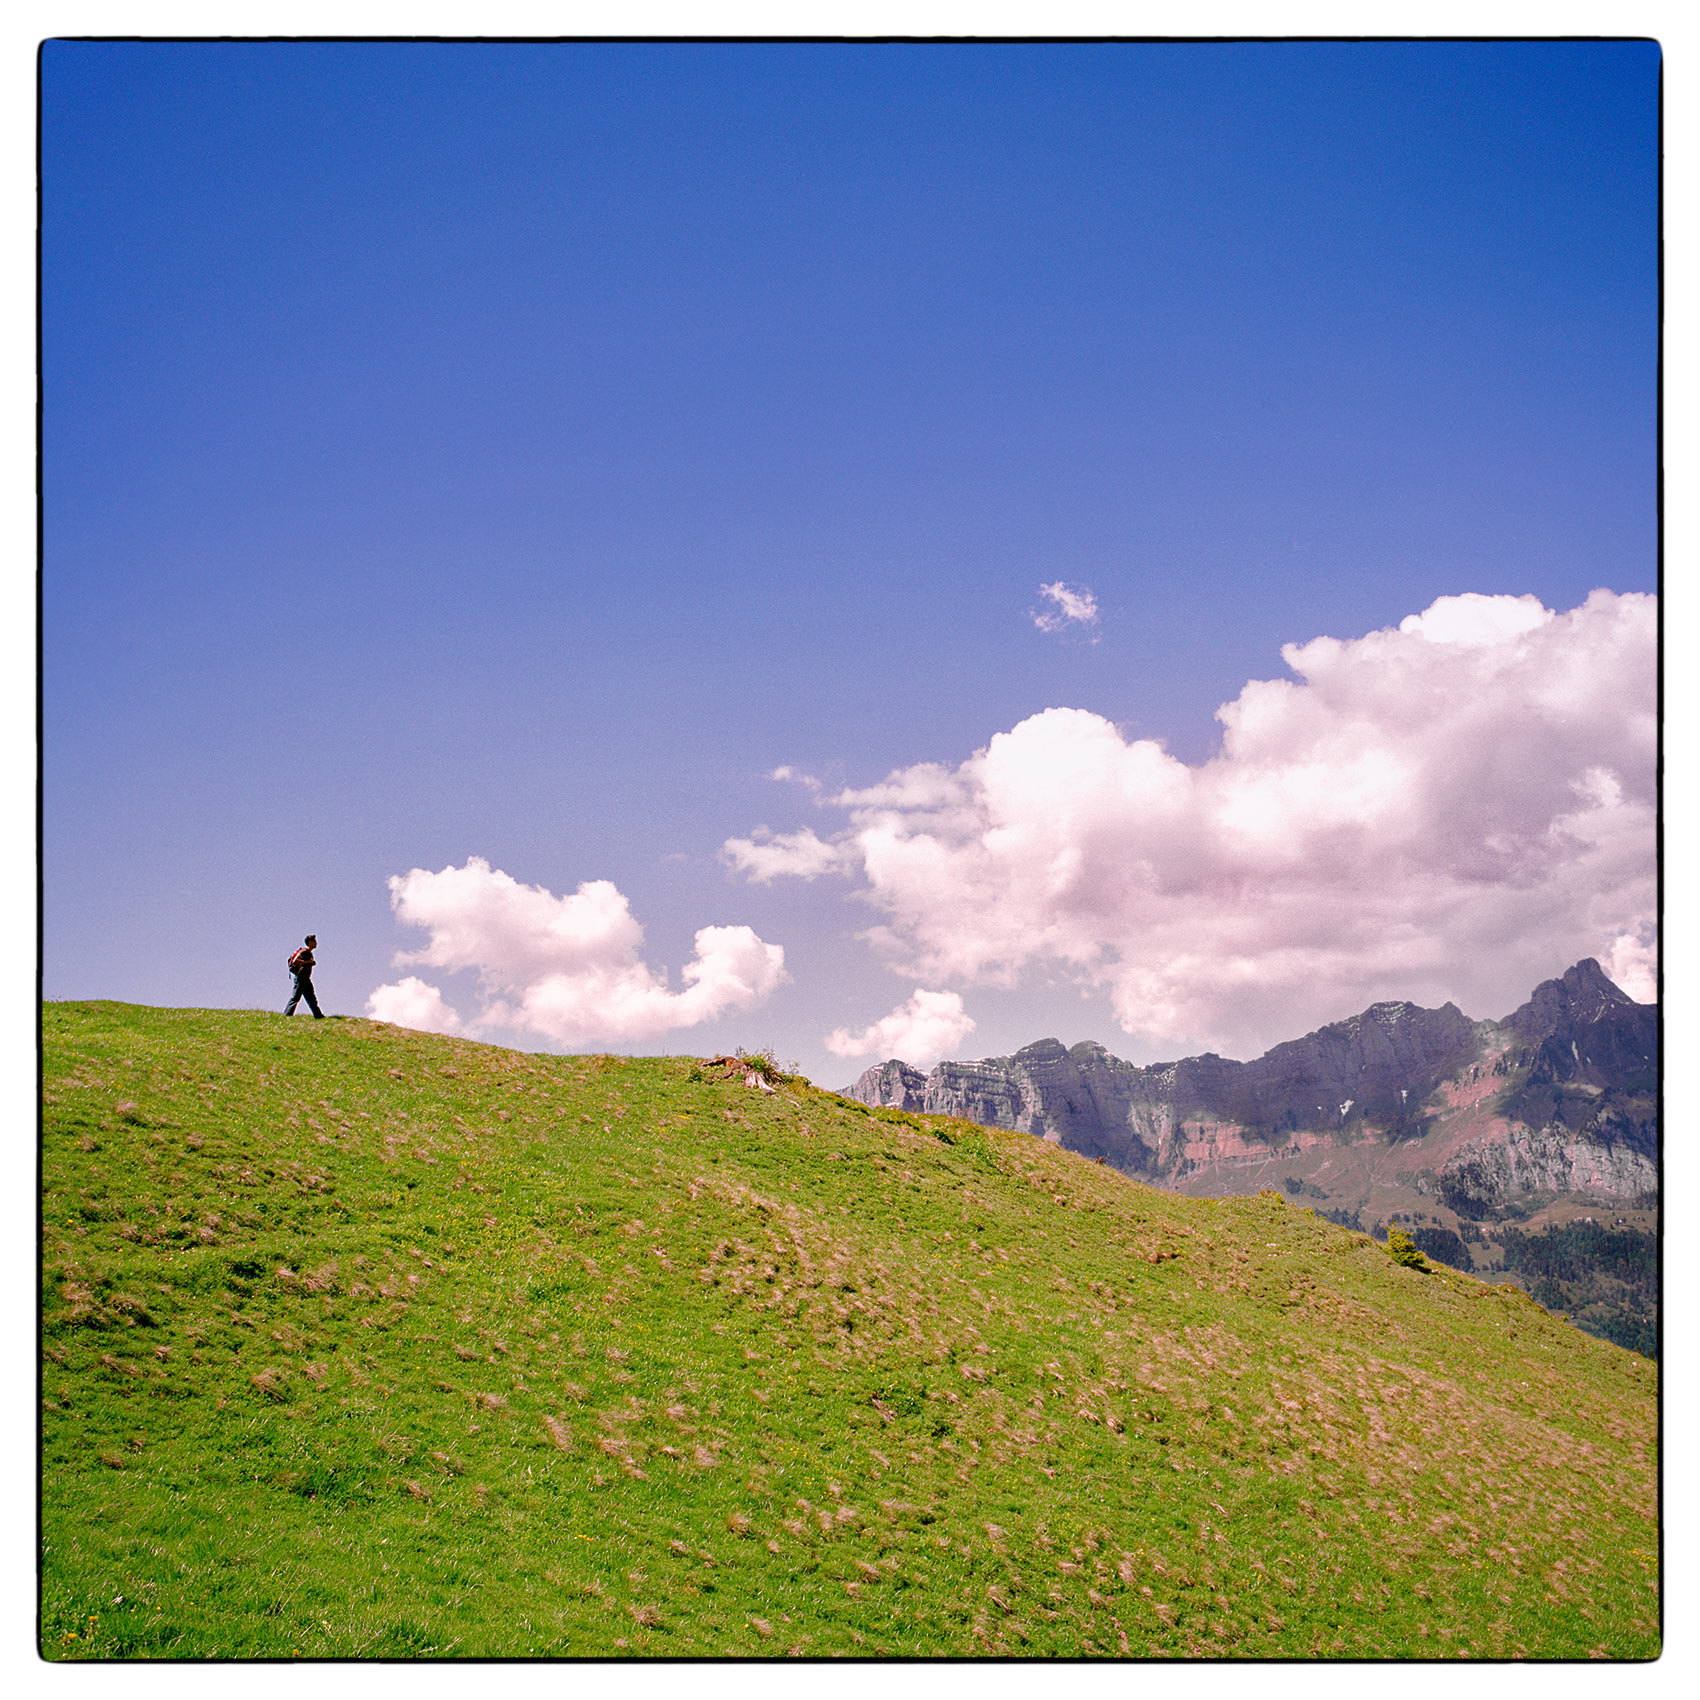 a-man-is-dwarfed-by-the-swiss-alps-as-he-hikes-on-a-neaby-hillside-outside-of-zurich-switzerland